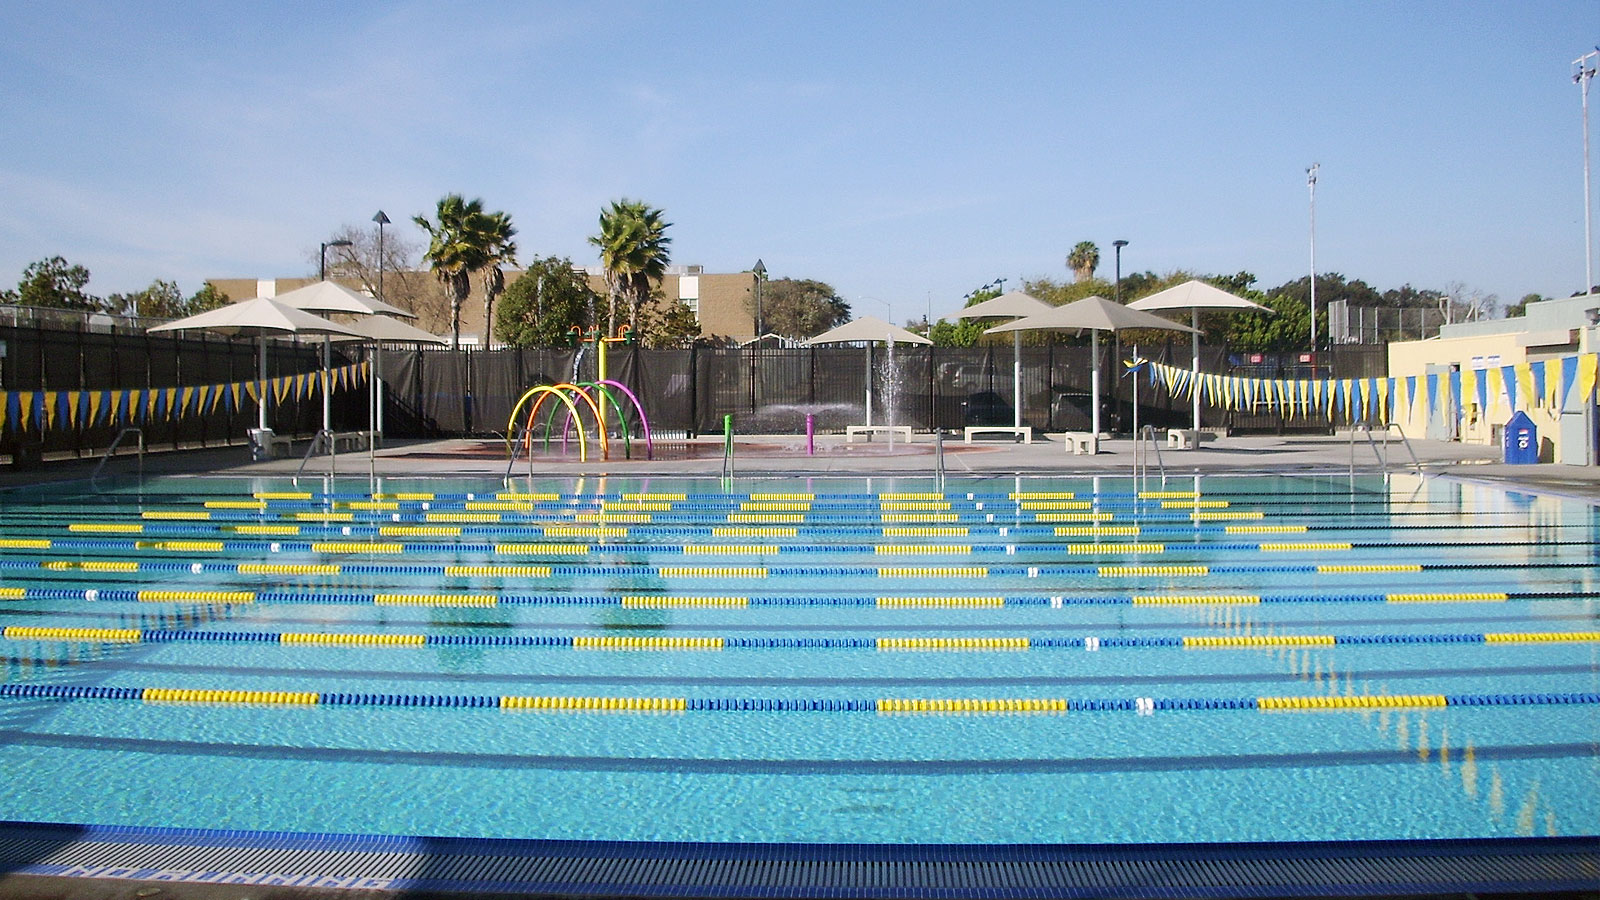 Memorial pool 2902 marcy ave san diego ca 92113 619 235 1139